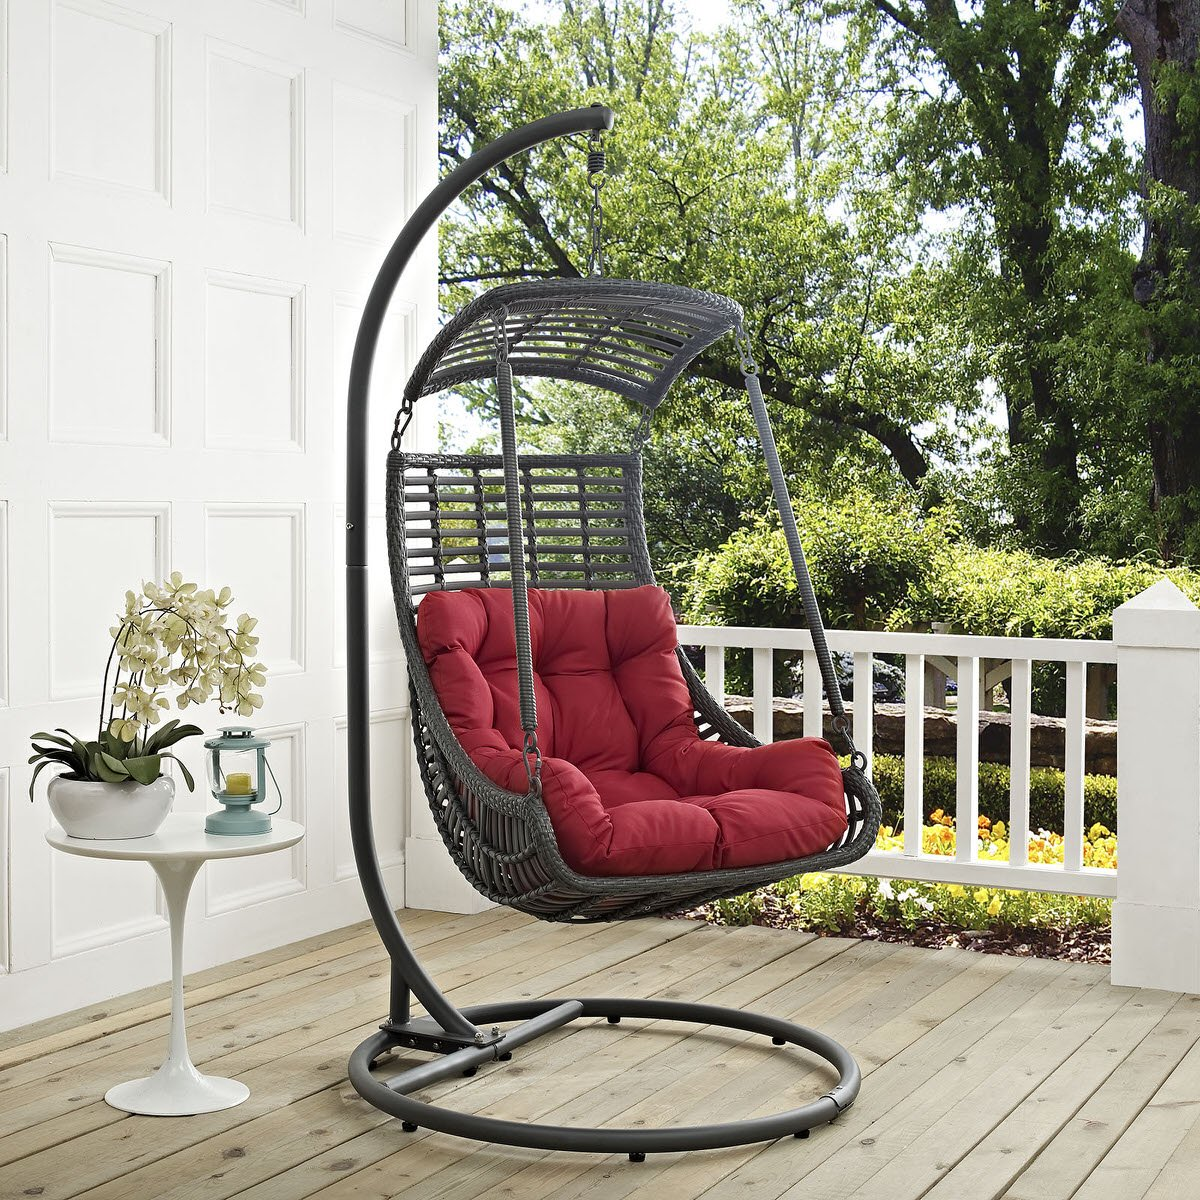 swing chair pics tommy bahama chairs beach jungle outdoor patio with stand red by modern living